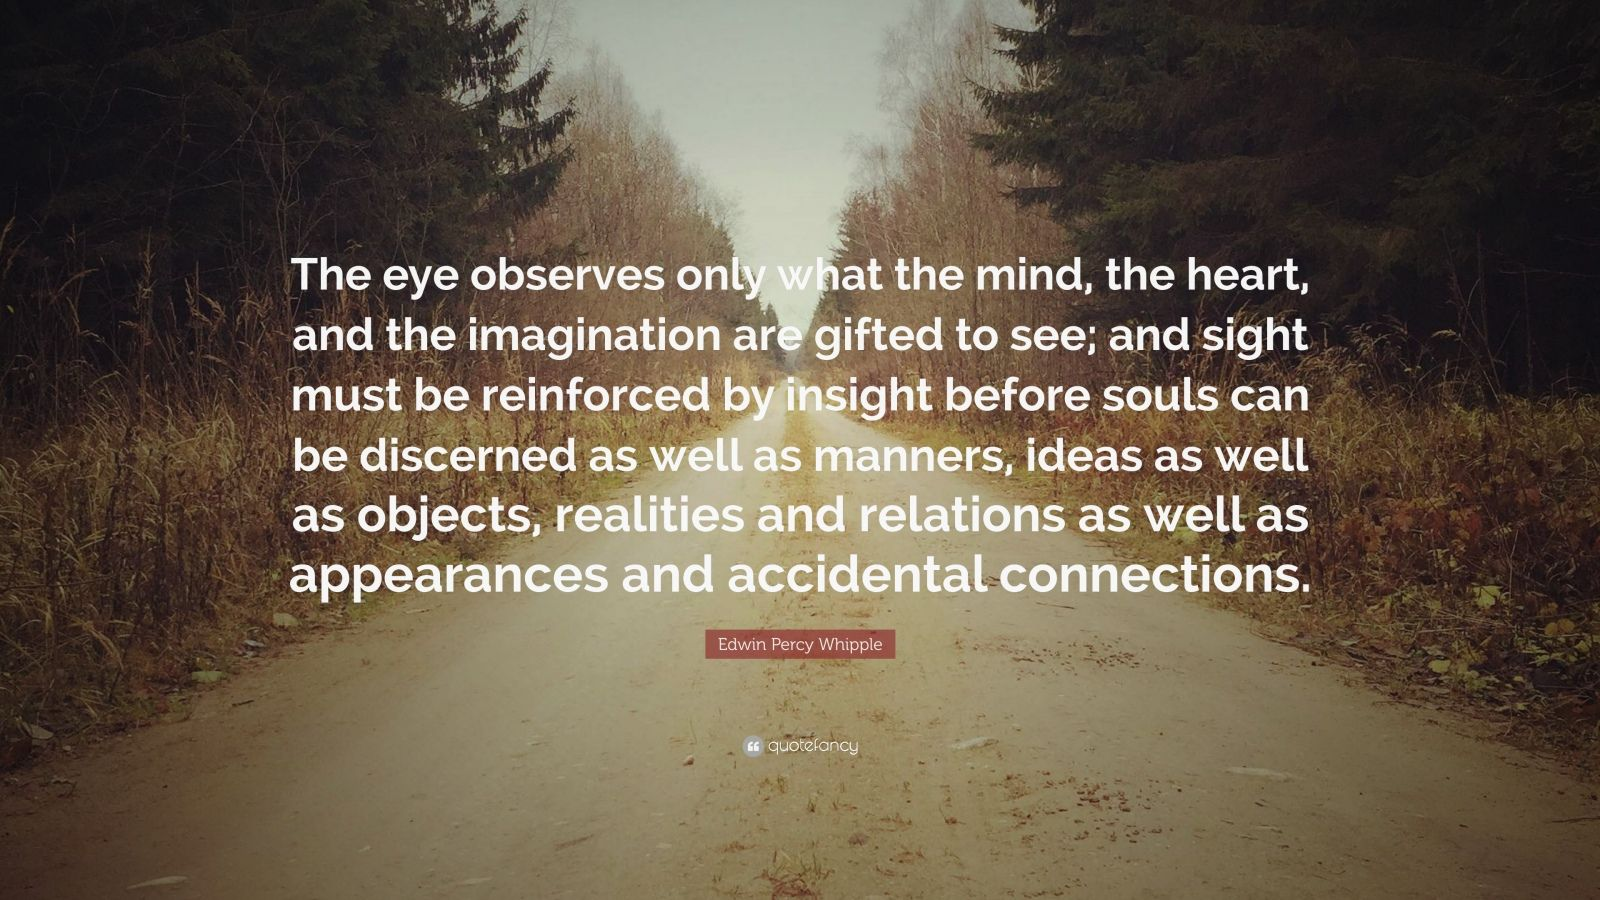 """Edwin Percy Whipple Quote: """"The eye observes only what the mind, the heart, and the imagination are gifted to see; and sight must be reinforced by insight before souls can be discerned as well as manners, ideas as well as objects, realities and relations as well as appearances and accidental connections."""""""